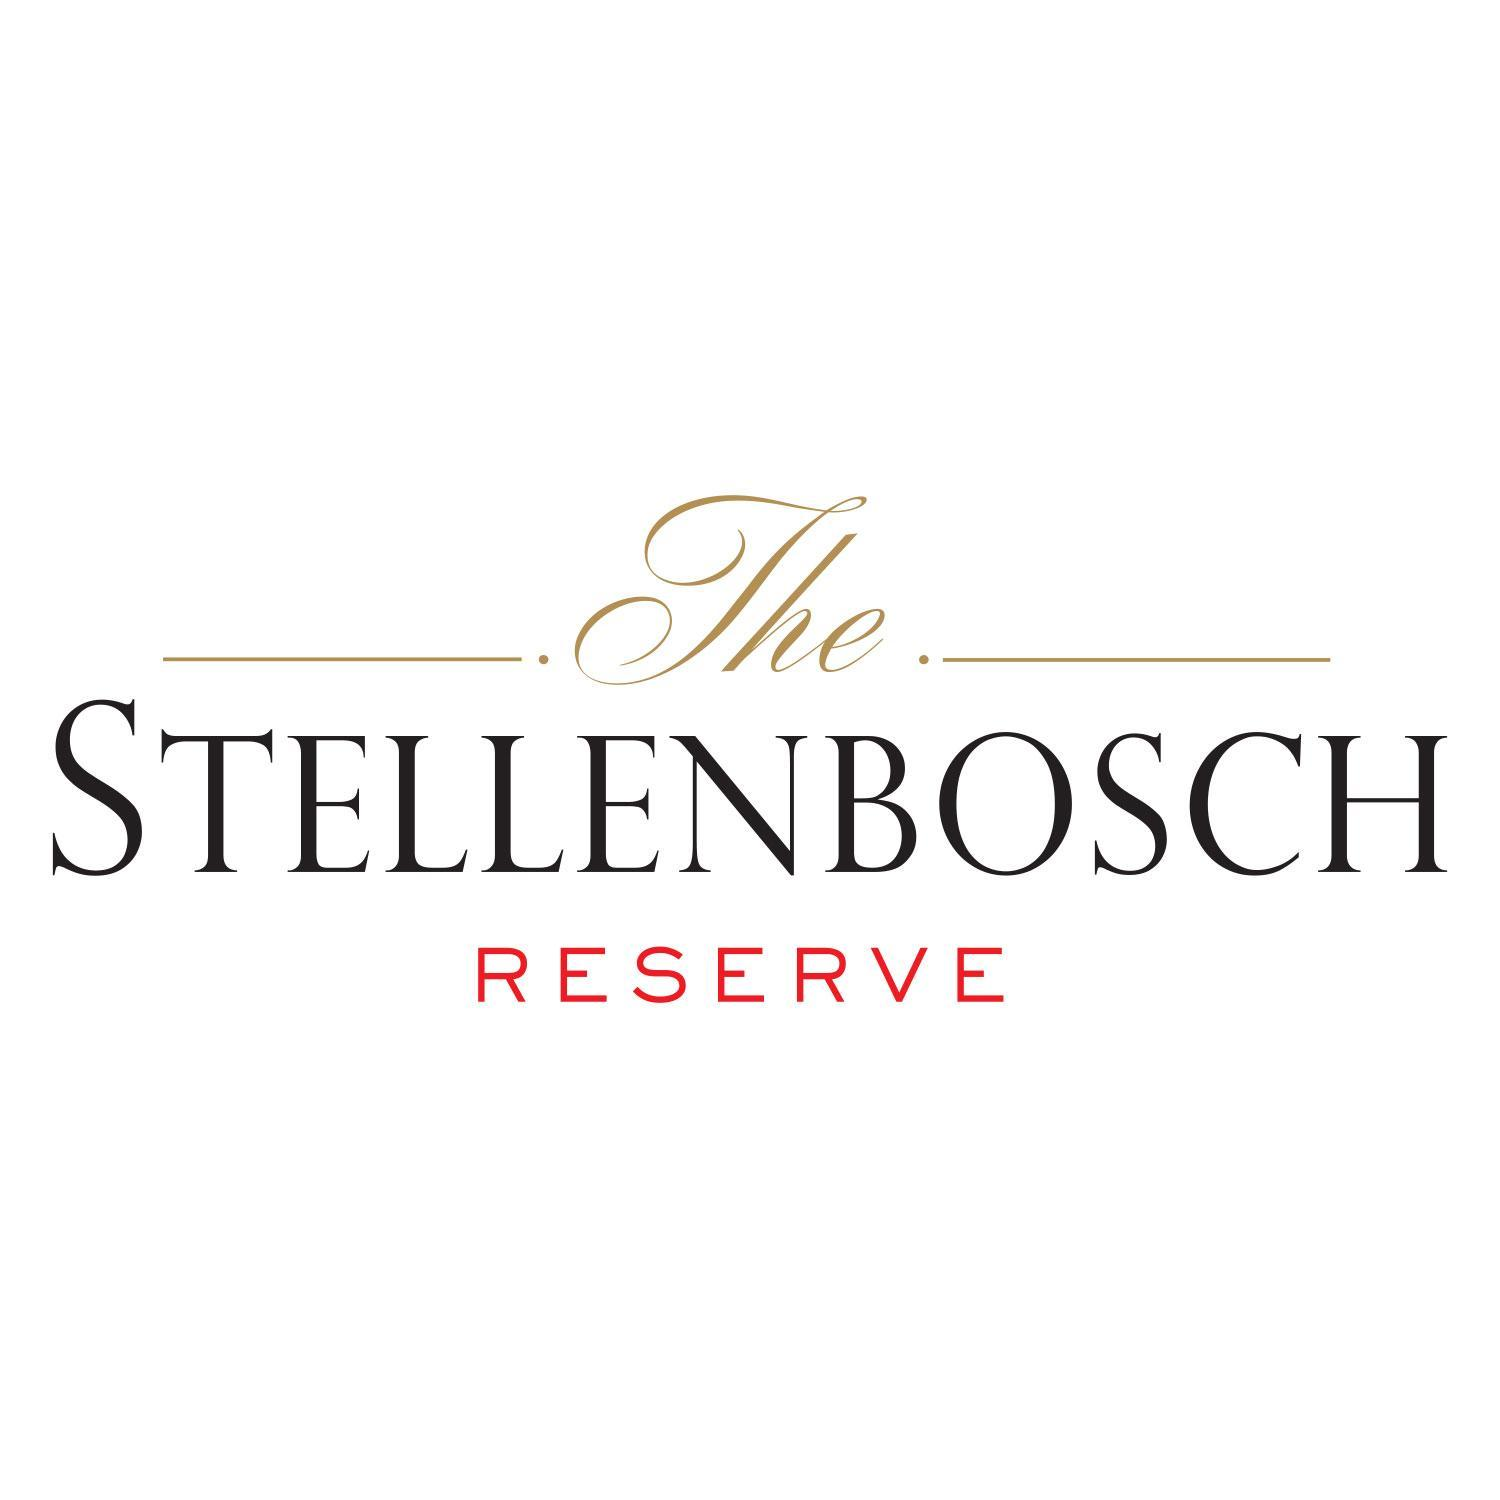 THE STELLENBOSCH RESERVE